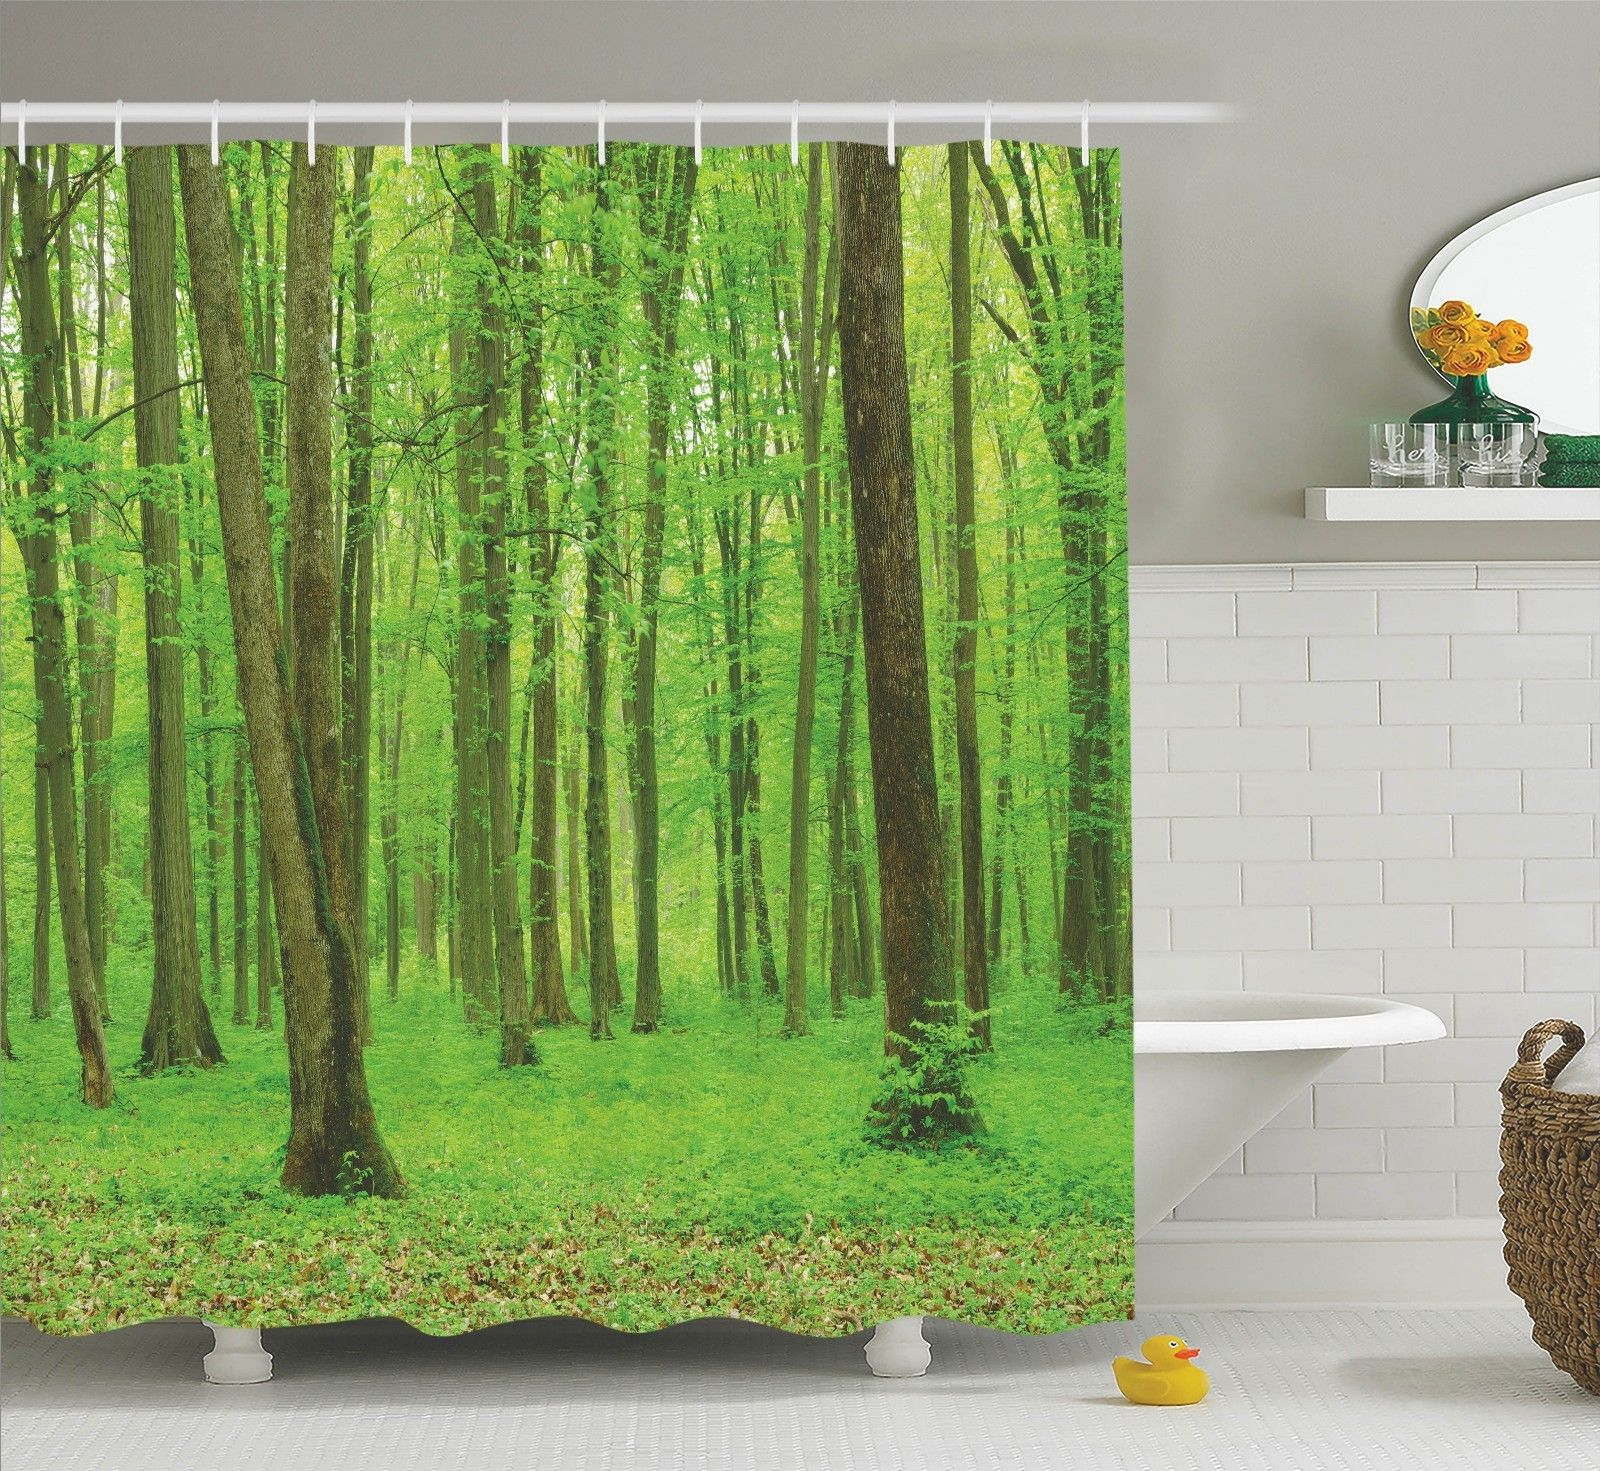 Farm House Decor Shower Curtain Set, Spring Forest In A Sunny Day Bright  Fresh Light